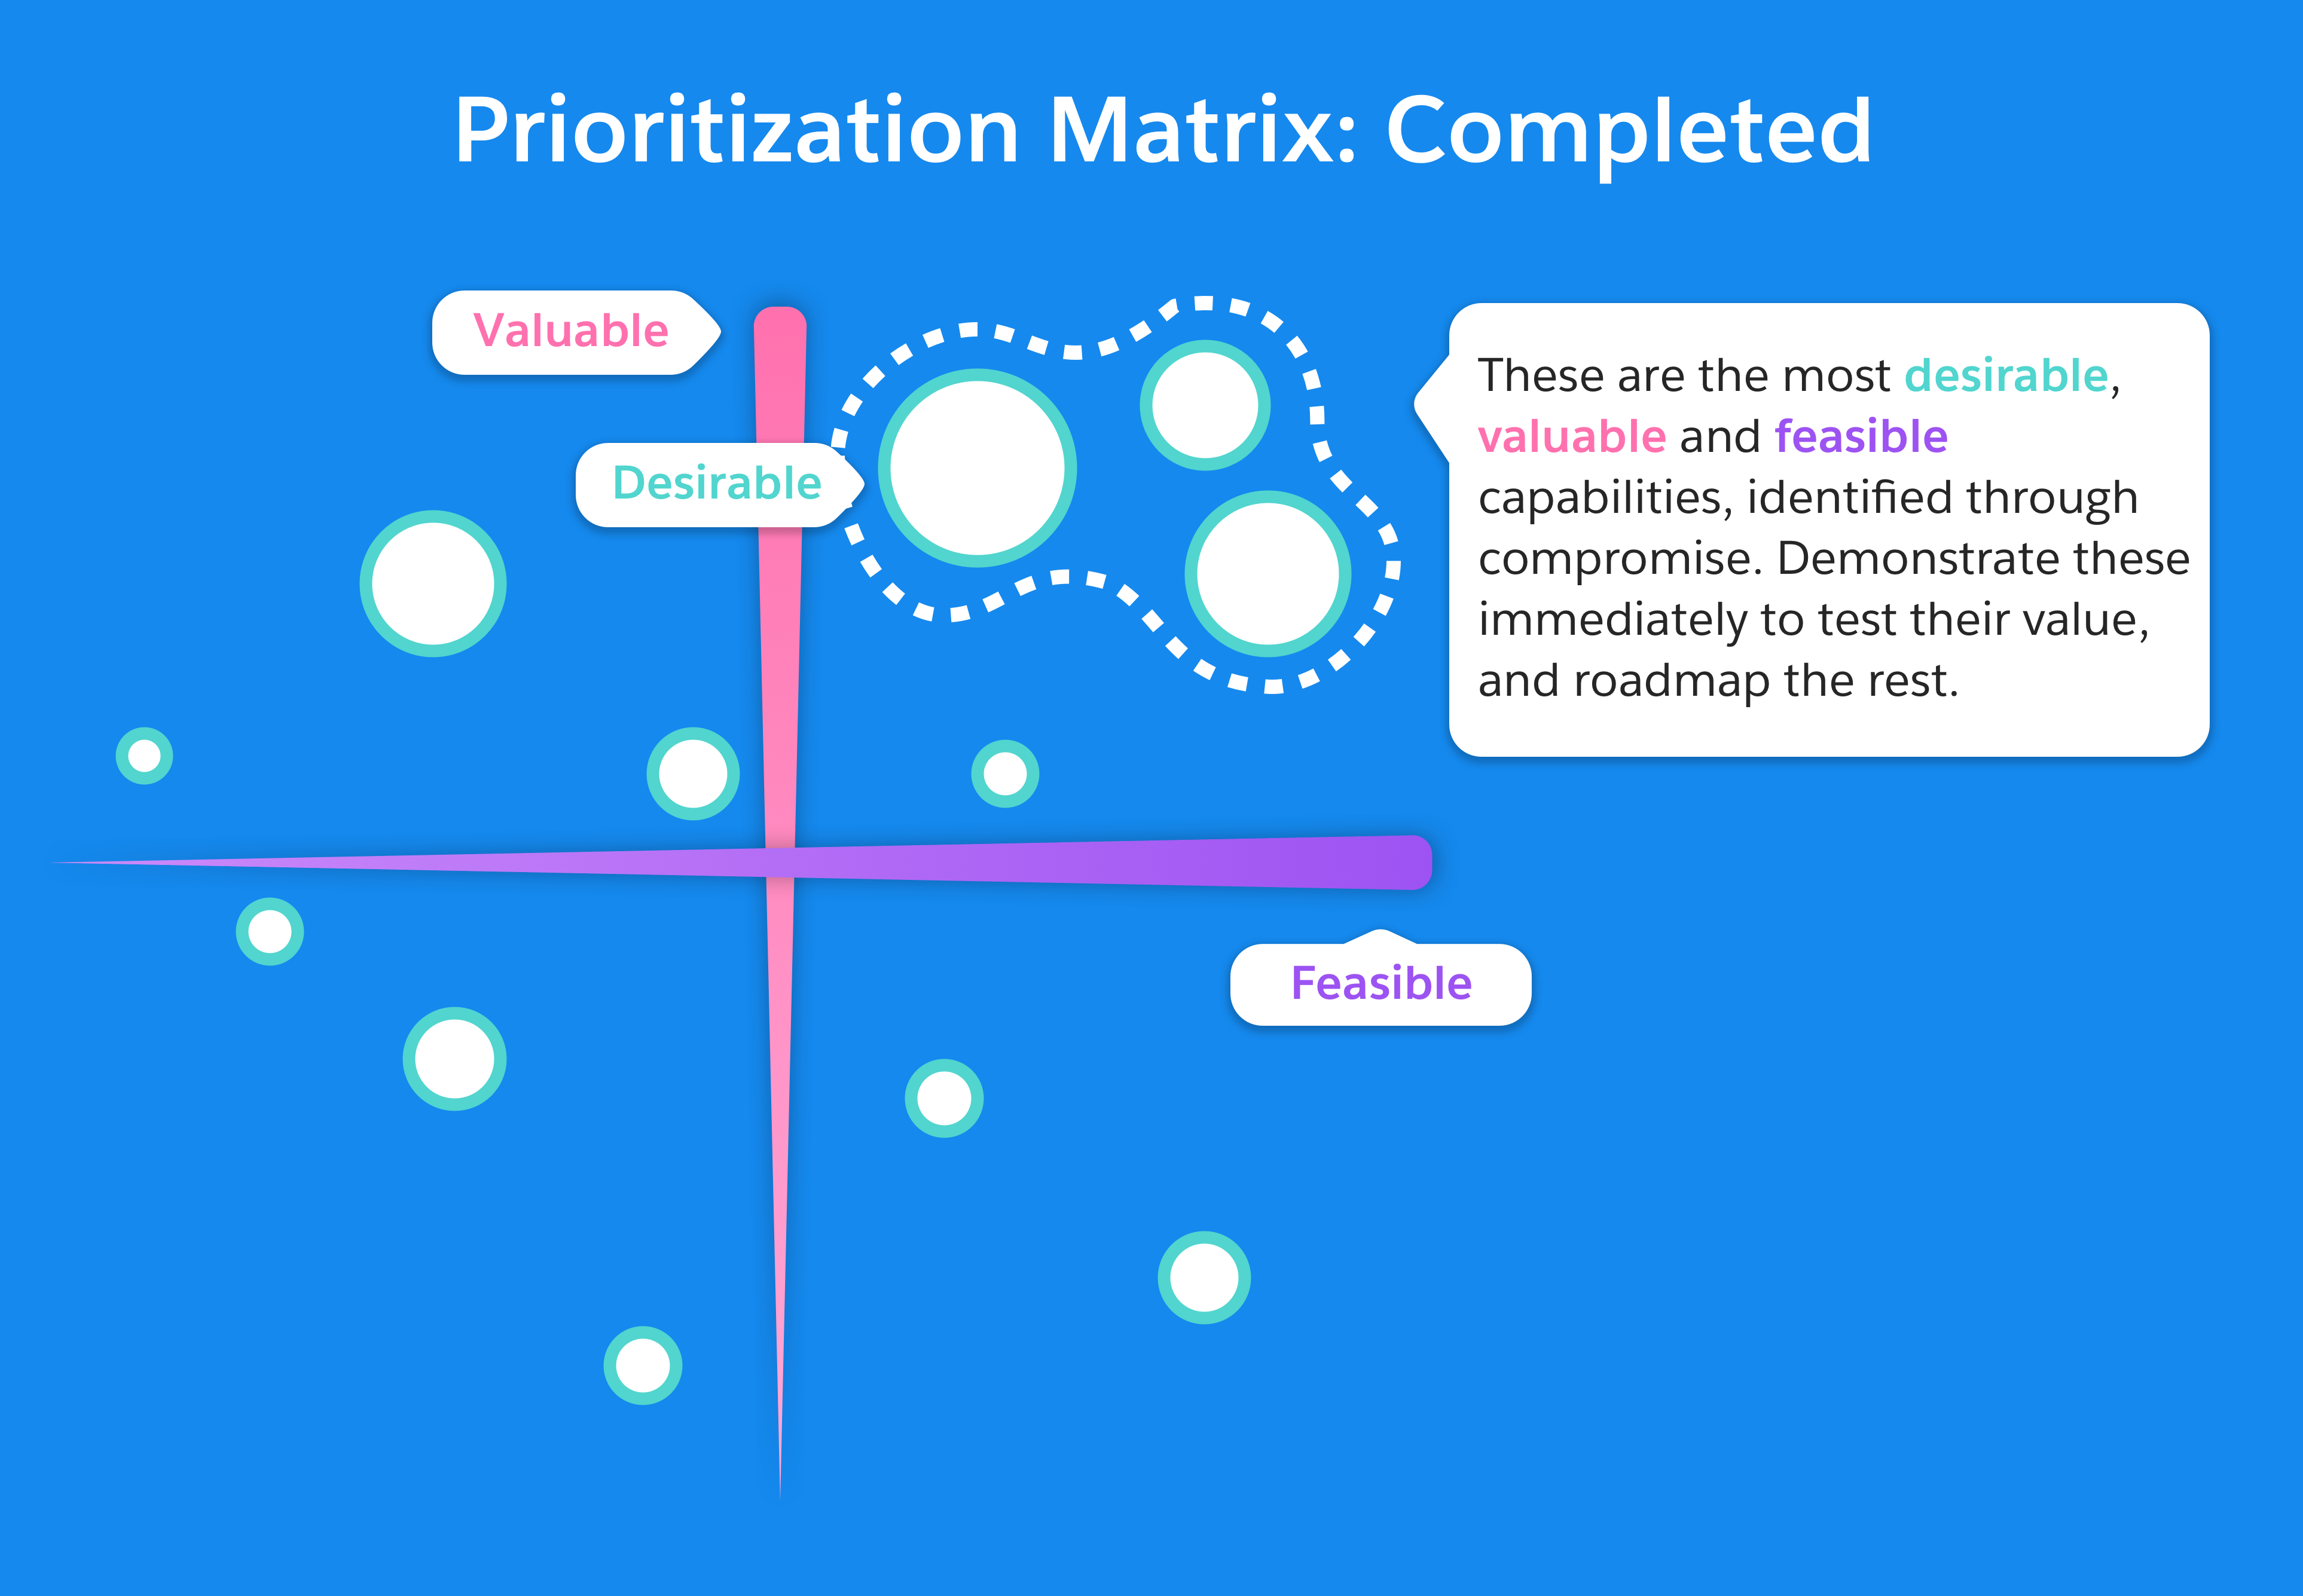 Prioritization Matrix: Completed. Highly desirable capabilities in the top right quadrant should now be demo'd for testing.